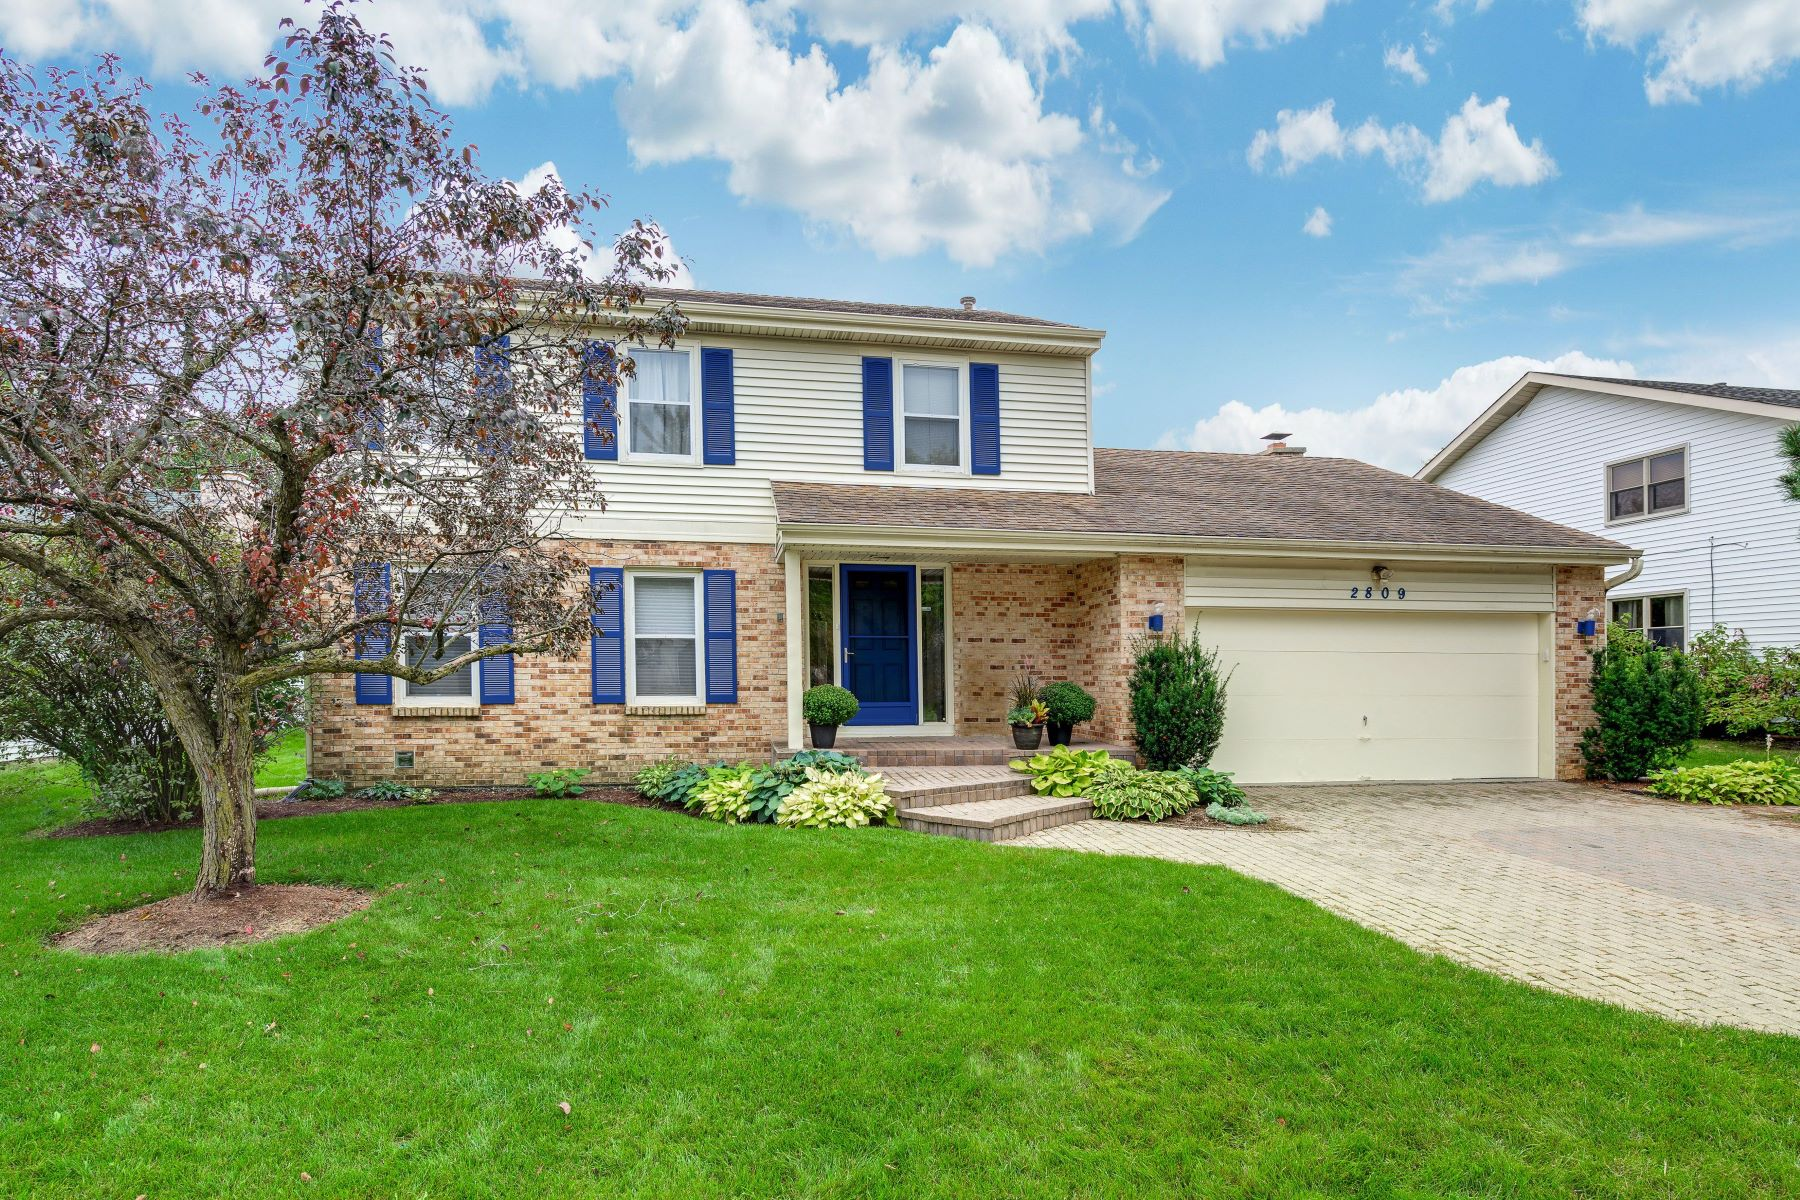 Single Family Homes for Active at Desirable home 2809 Crabtree Lane Northbrook, Illinois 60062 United States